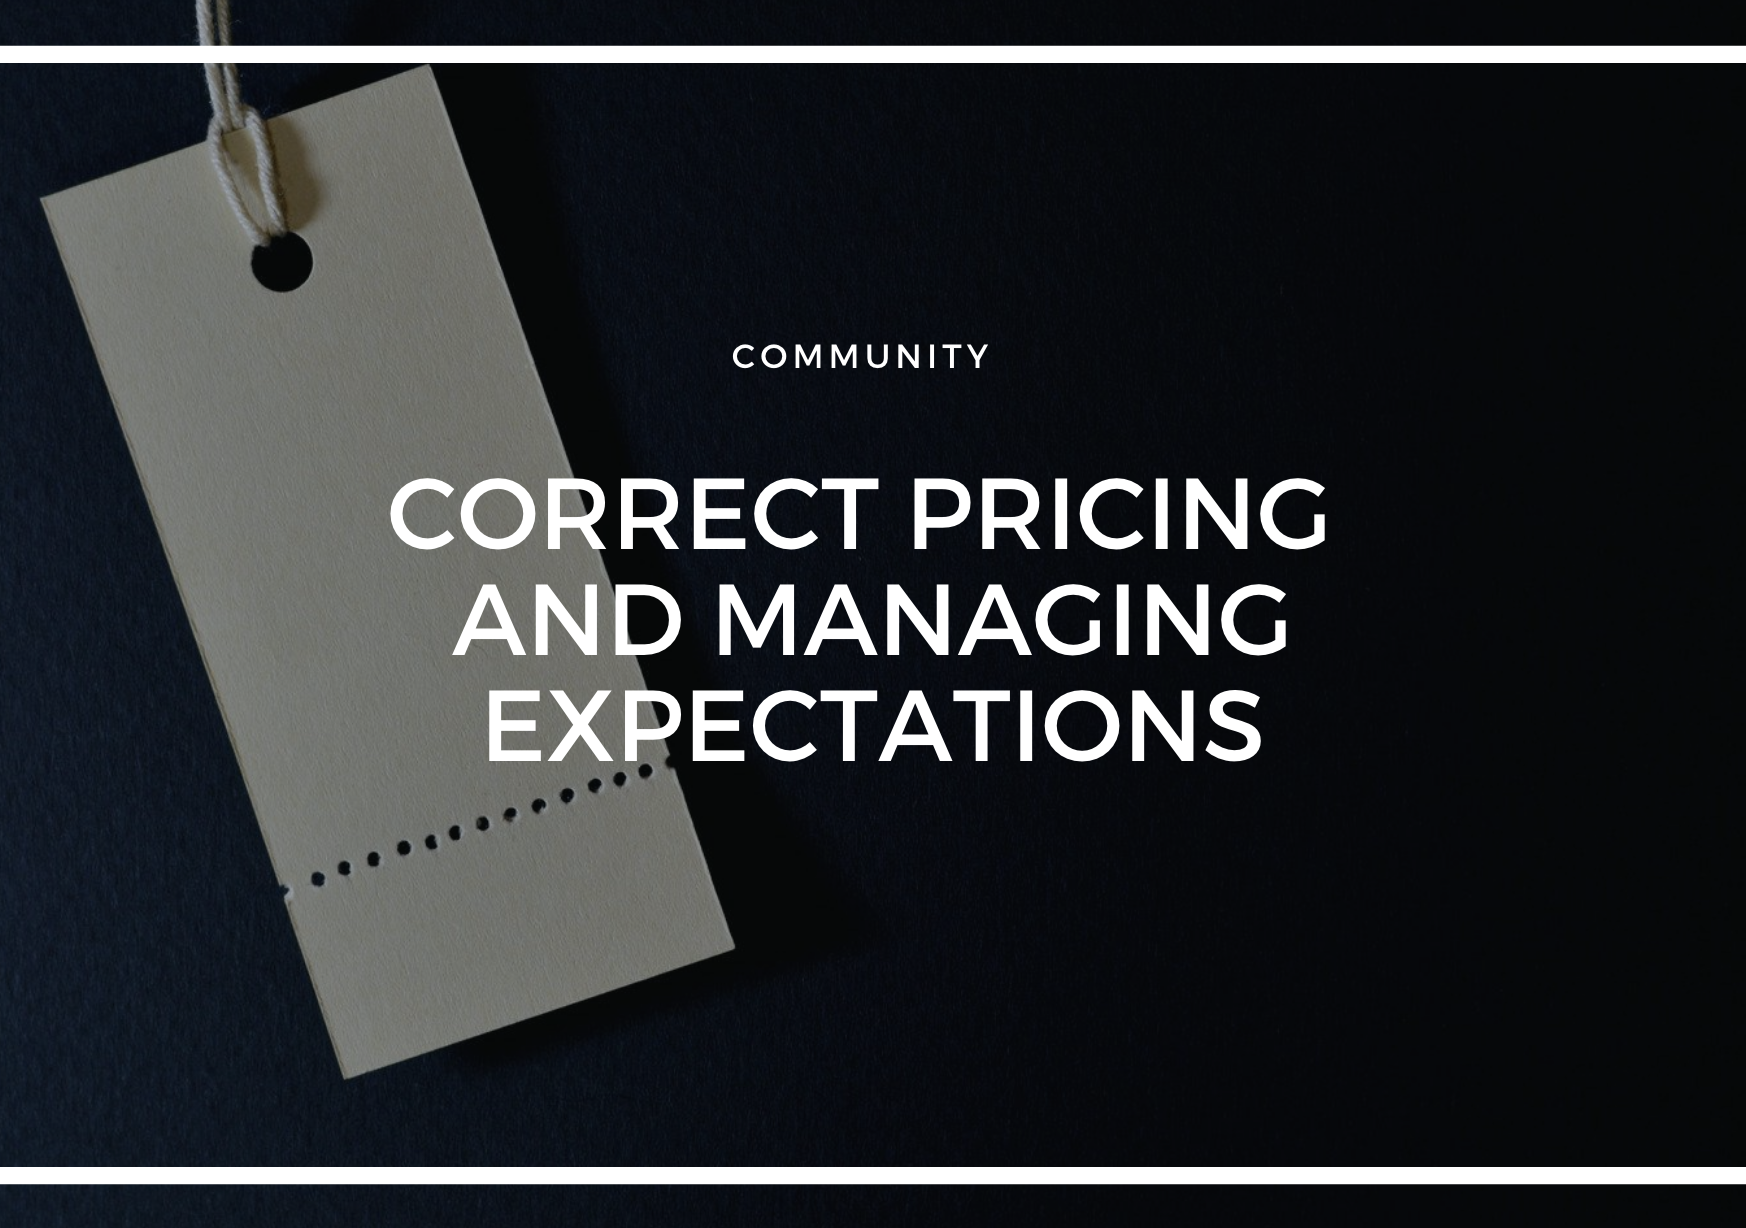 CORRECT PRICING AND MANAGING EXPECTATIONS